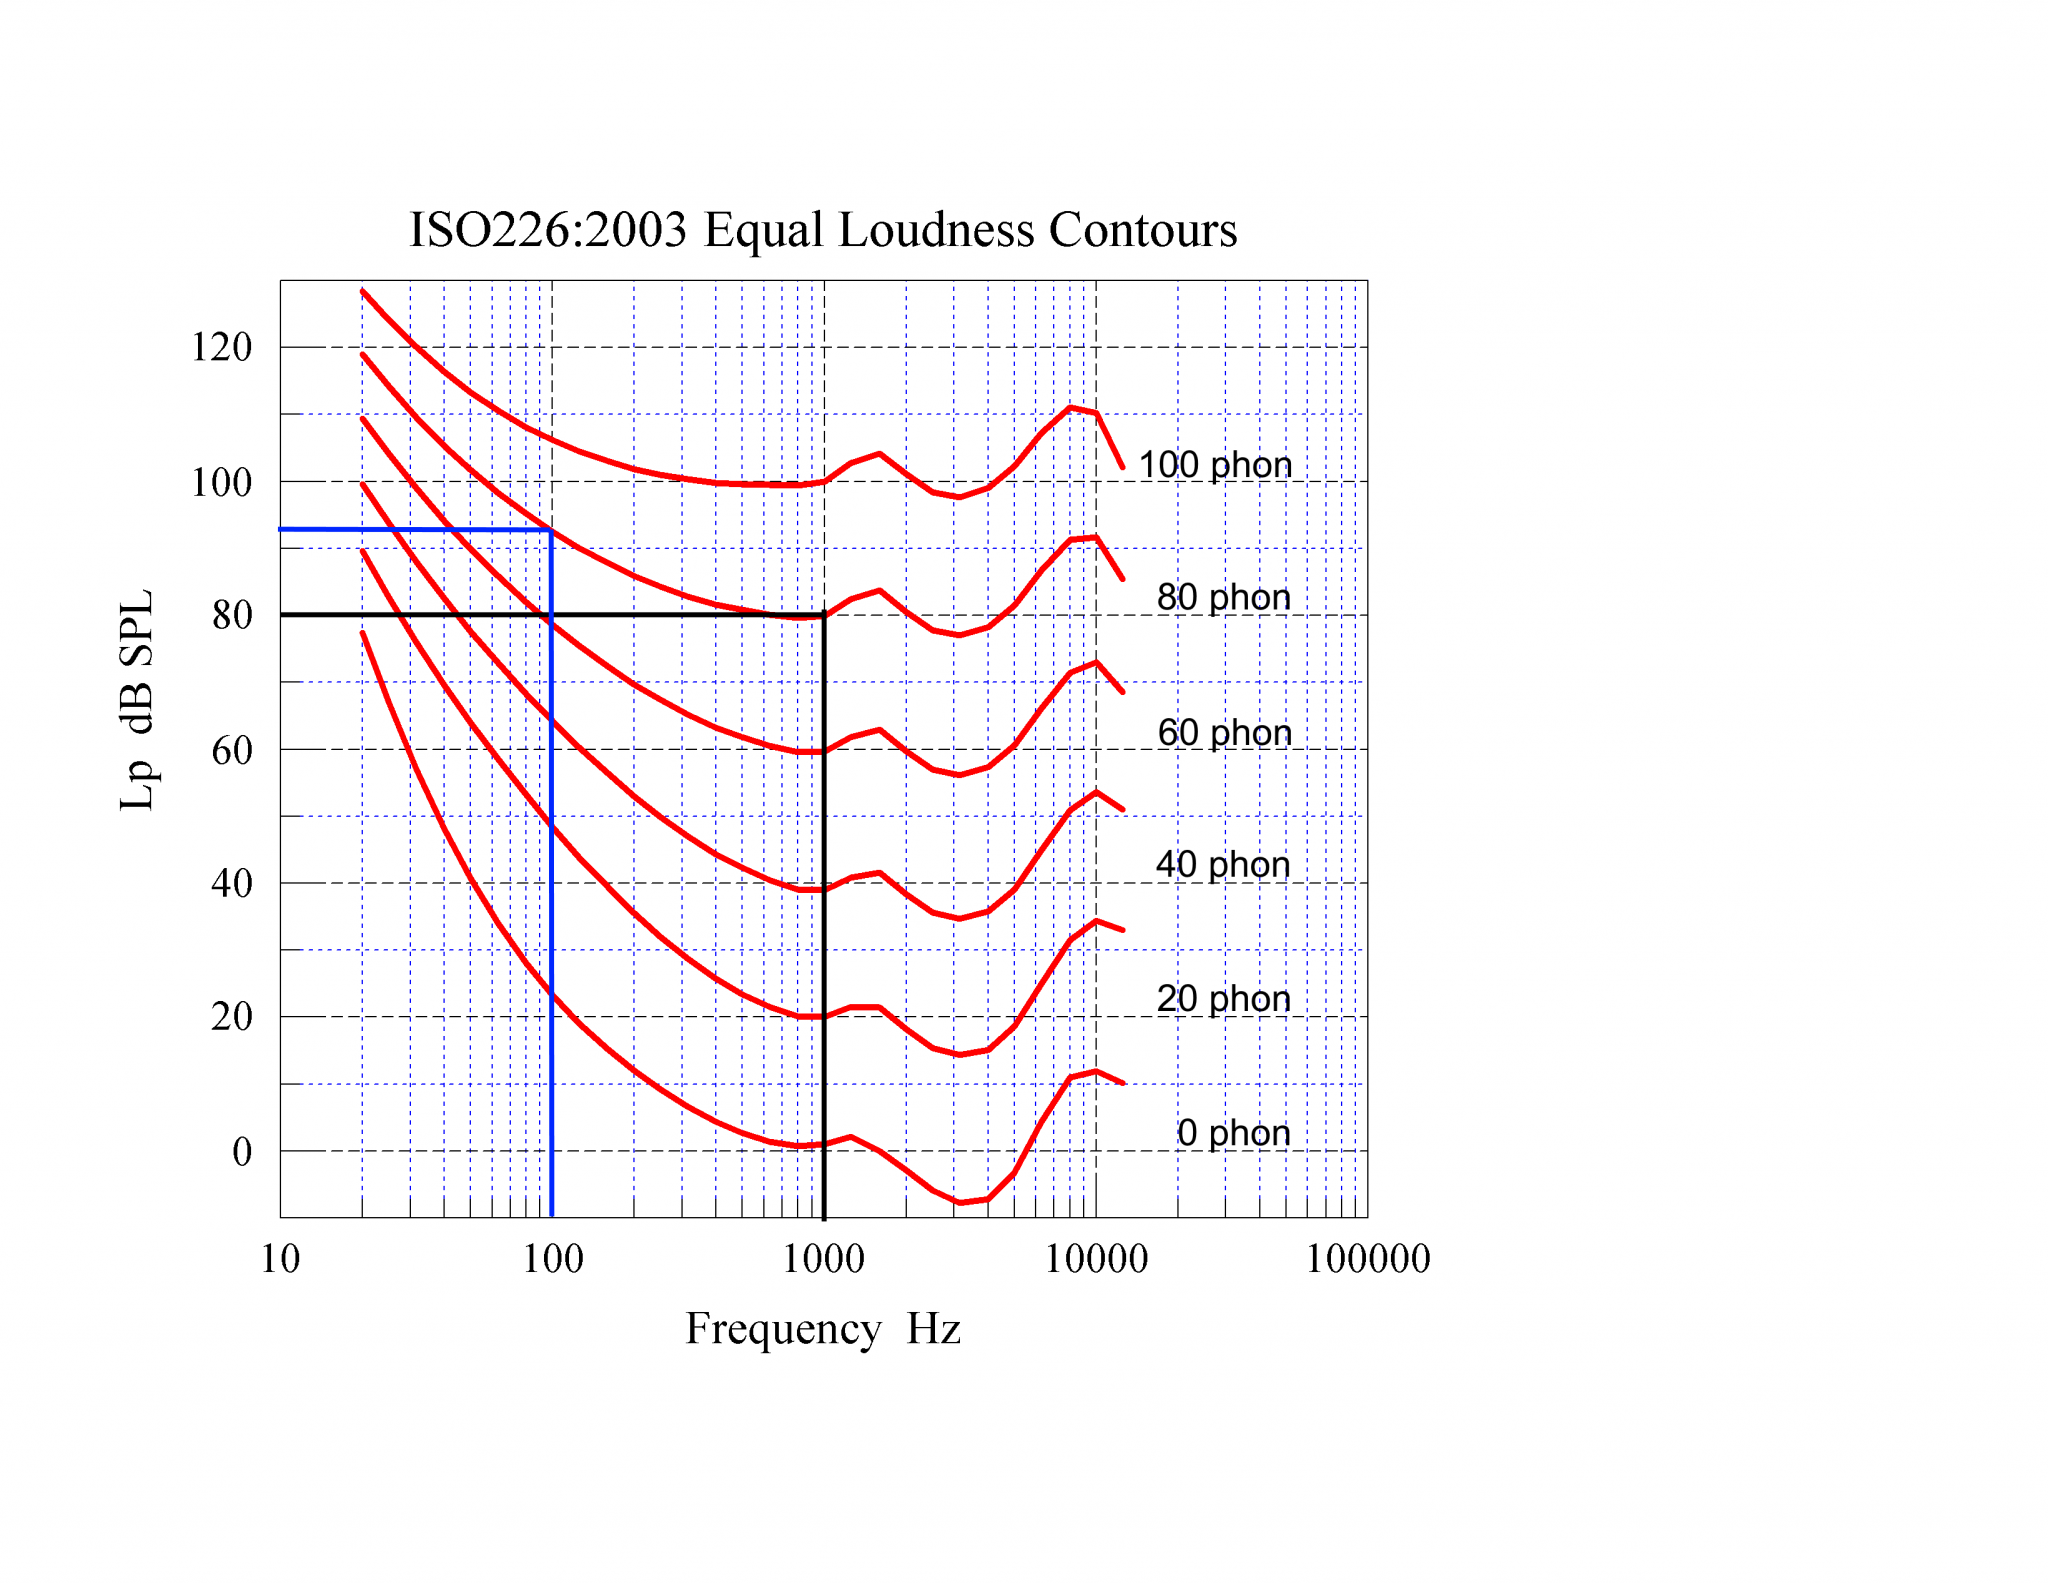 01 iso226-2003 Equal Loudness Contours - 80 phon 100 Hz and 1000 Hz.png